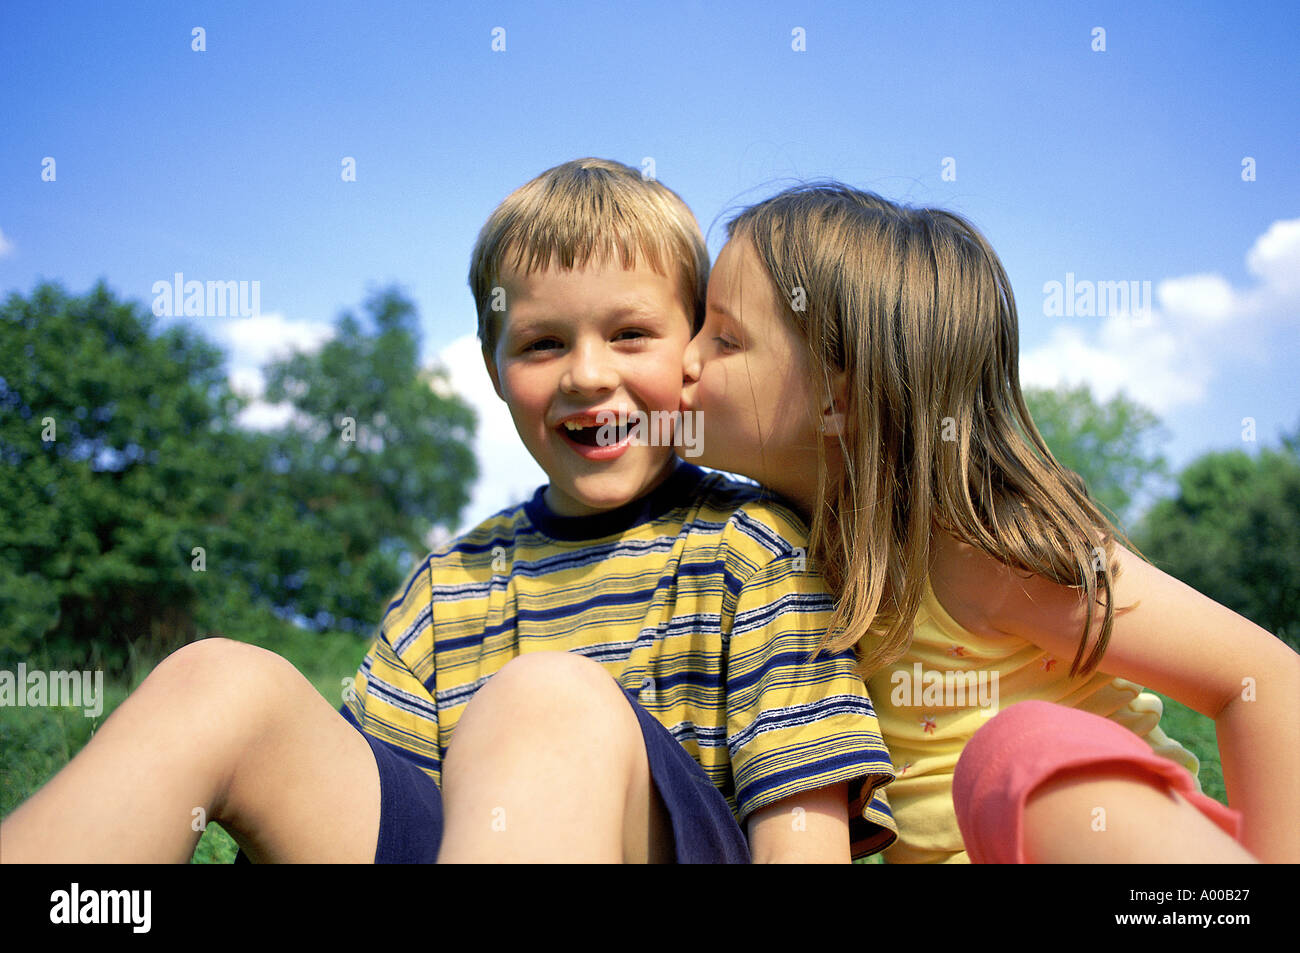 Young Girl Kissing Young Boy On Cheek Stock Photo 2855 Alamy